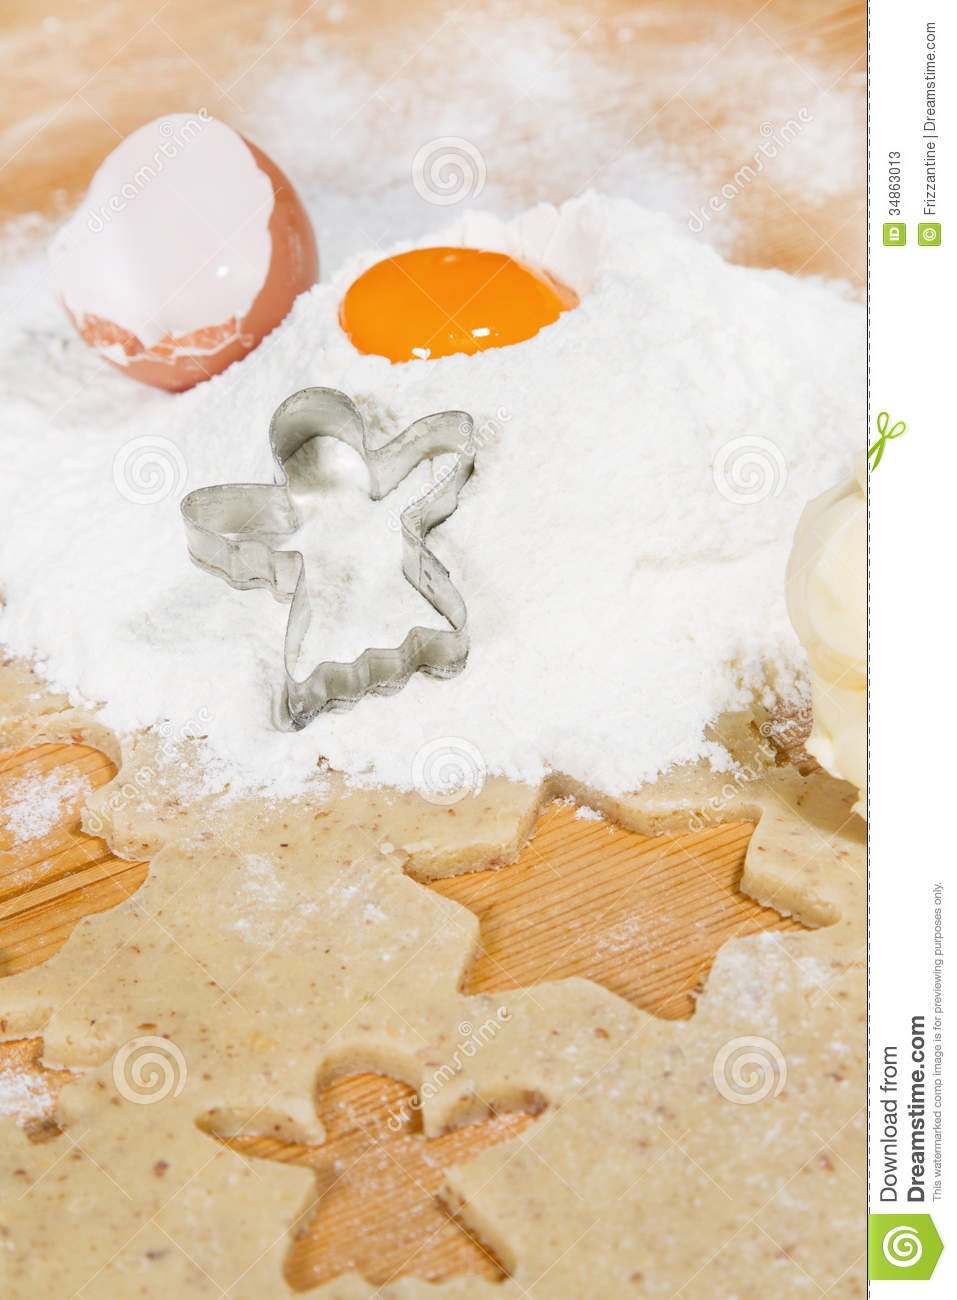 Christmas baking: snow angel cutter in flour with egg yolk